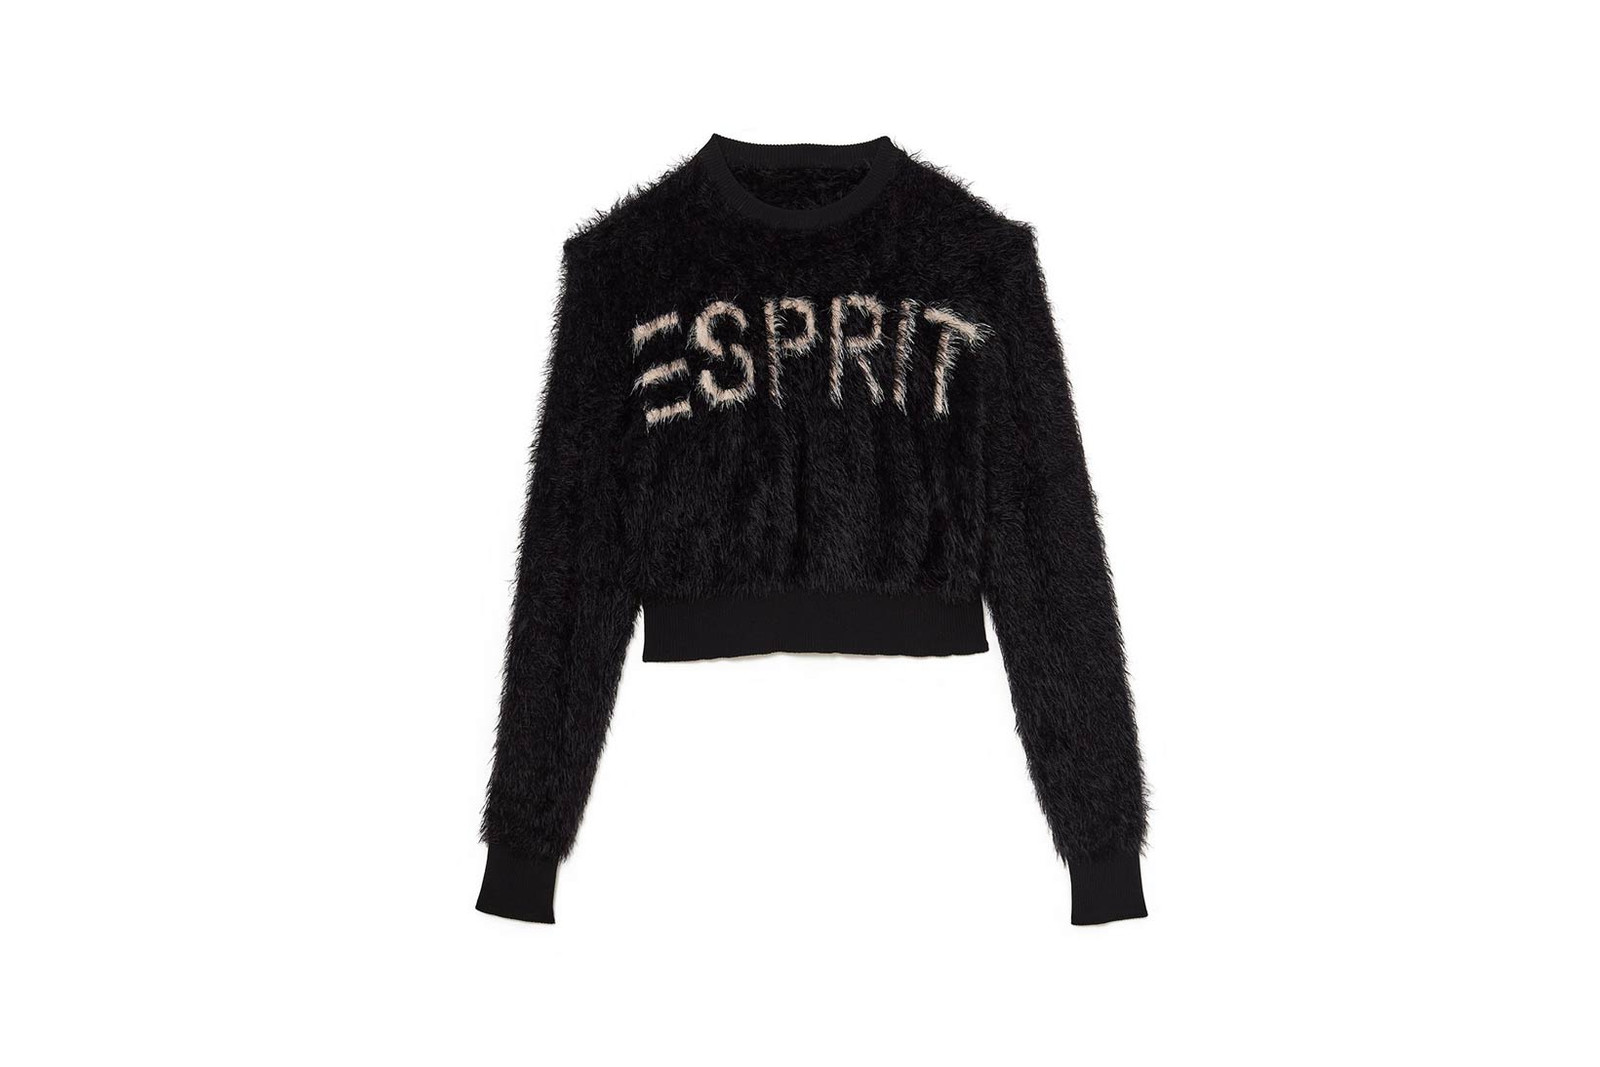 Esprit Opening Ceremony Winter 2017 Collection